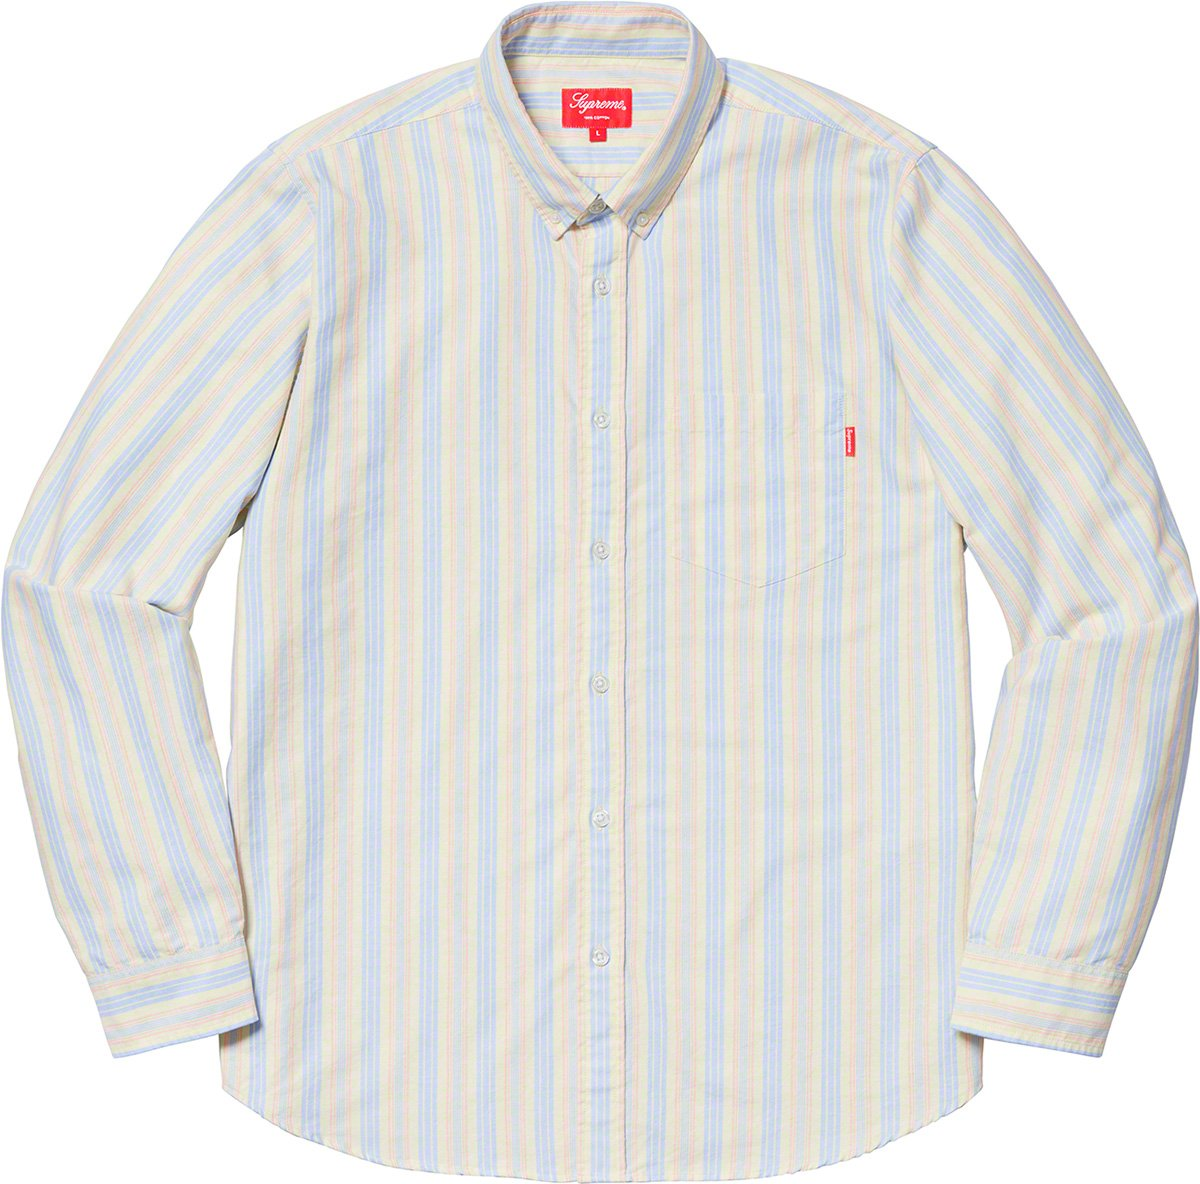 supreme-19ss-spring-summer-oxford-shirt